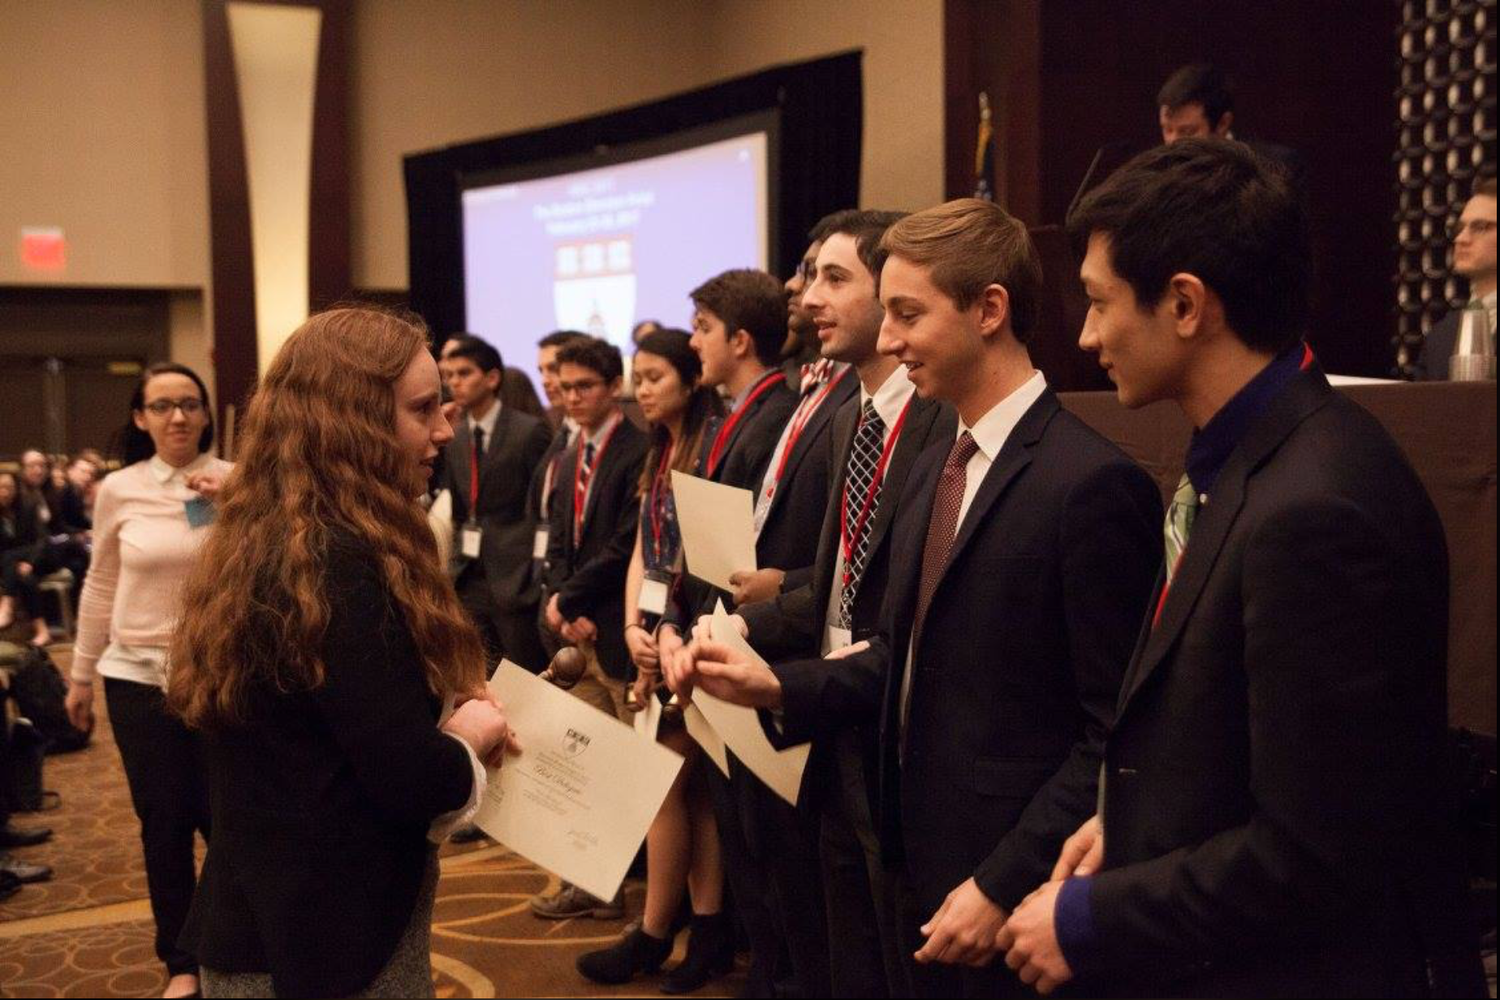 Members of Harvard Model Congress lead an awards ceremony.